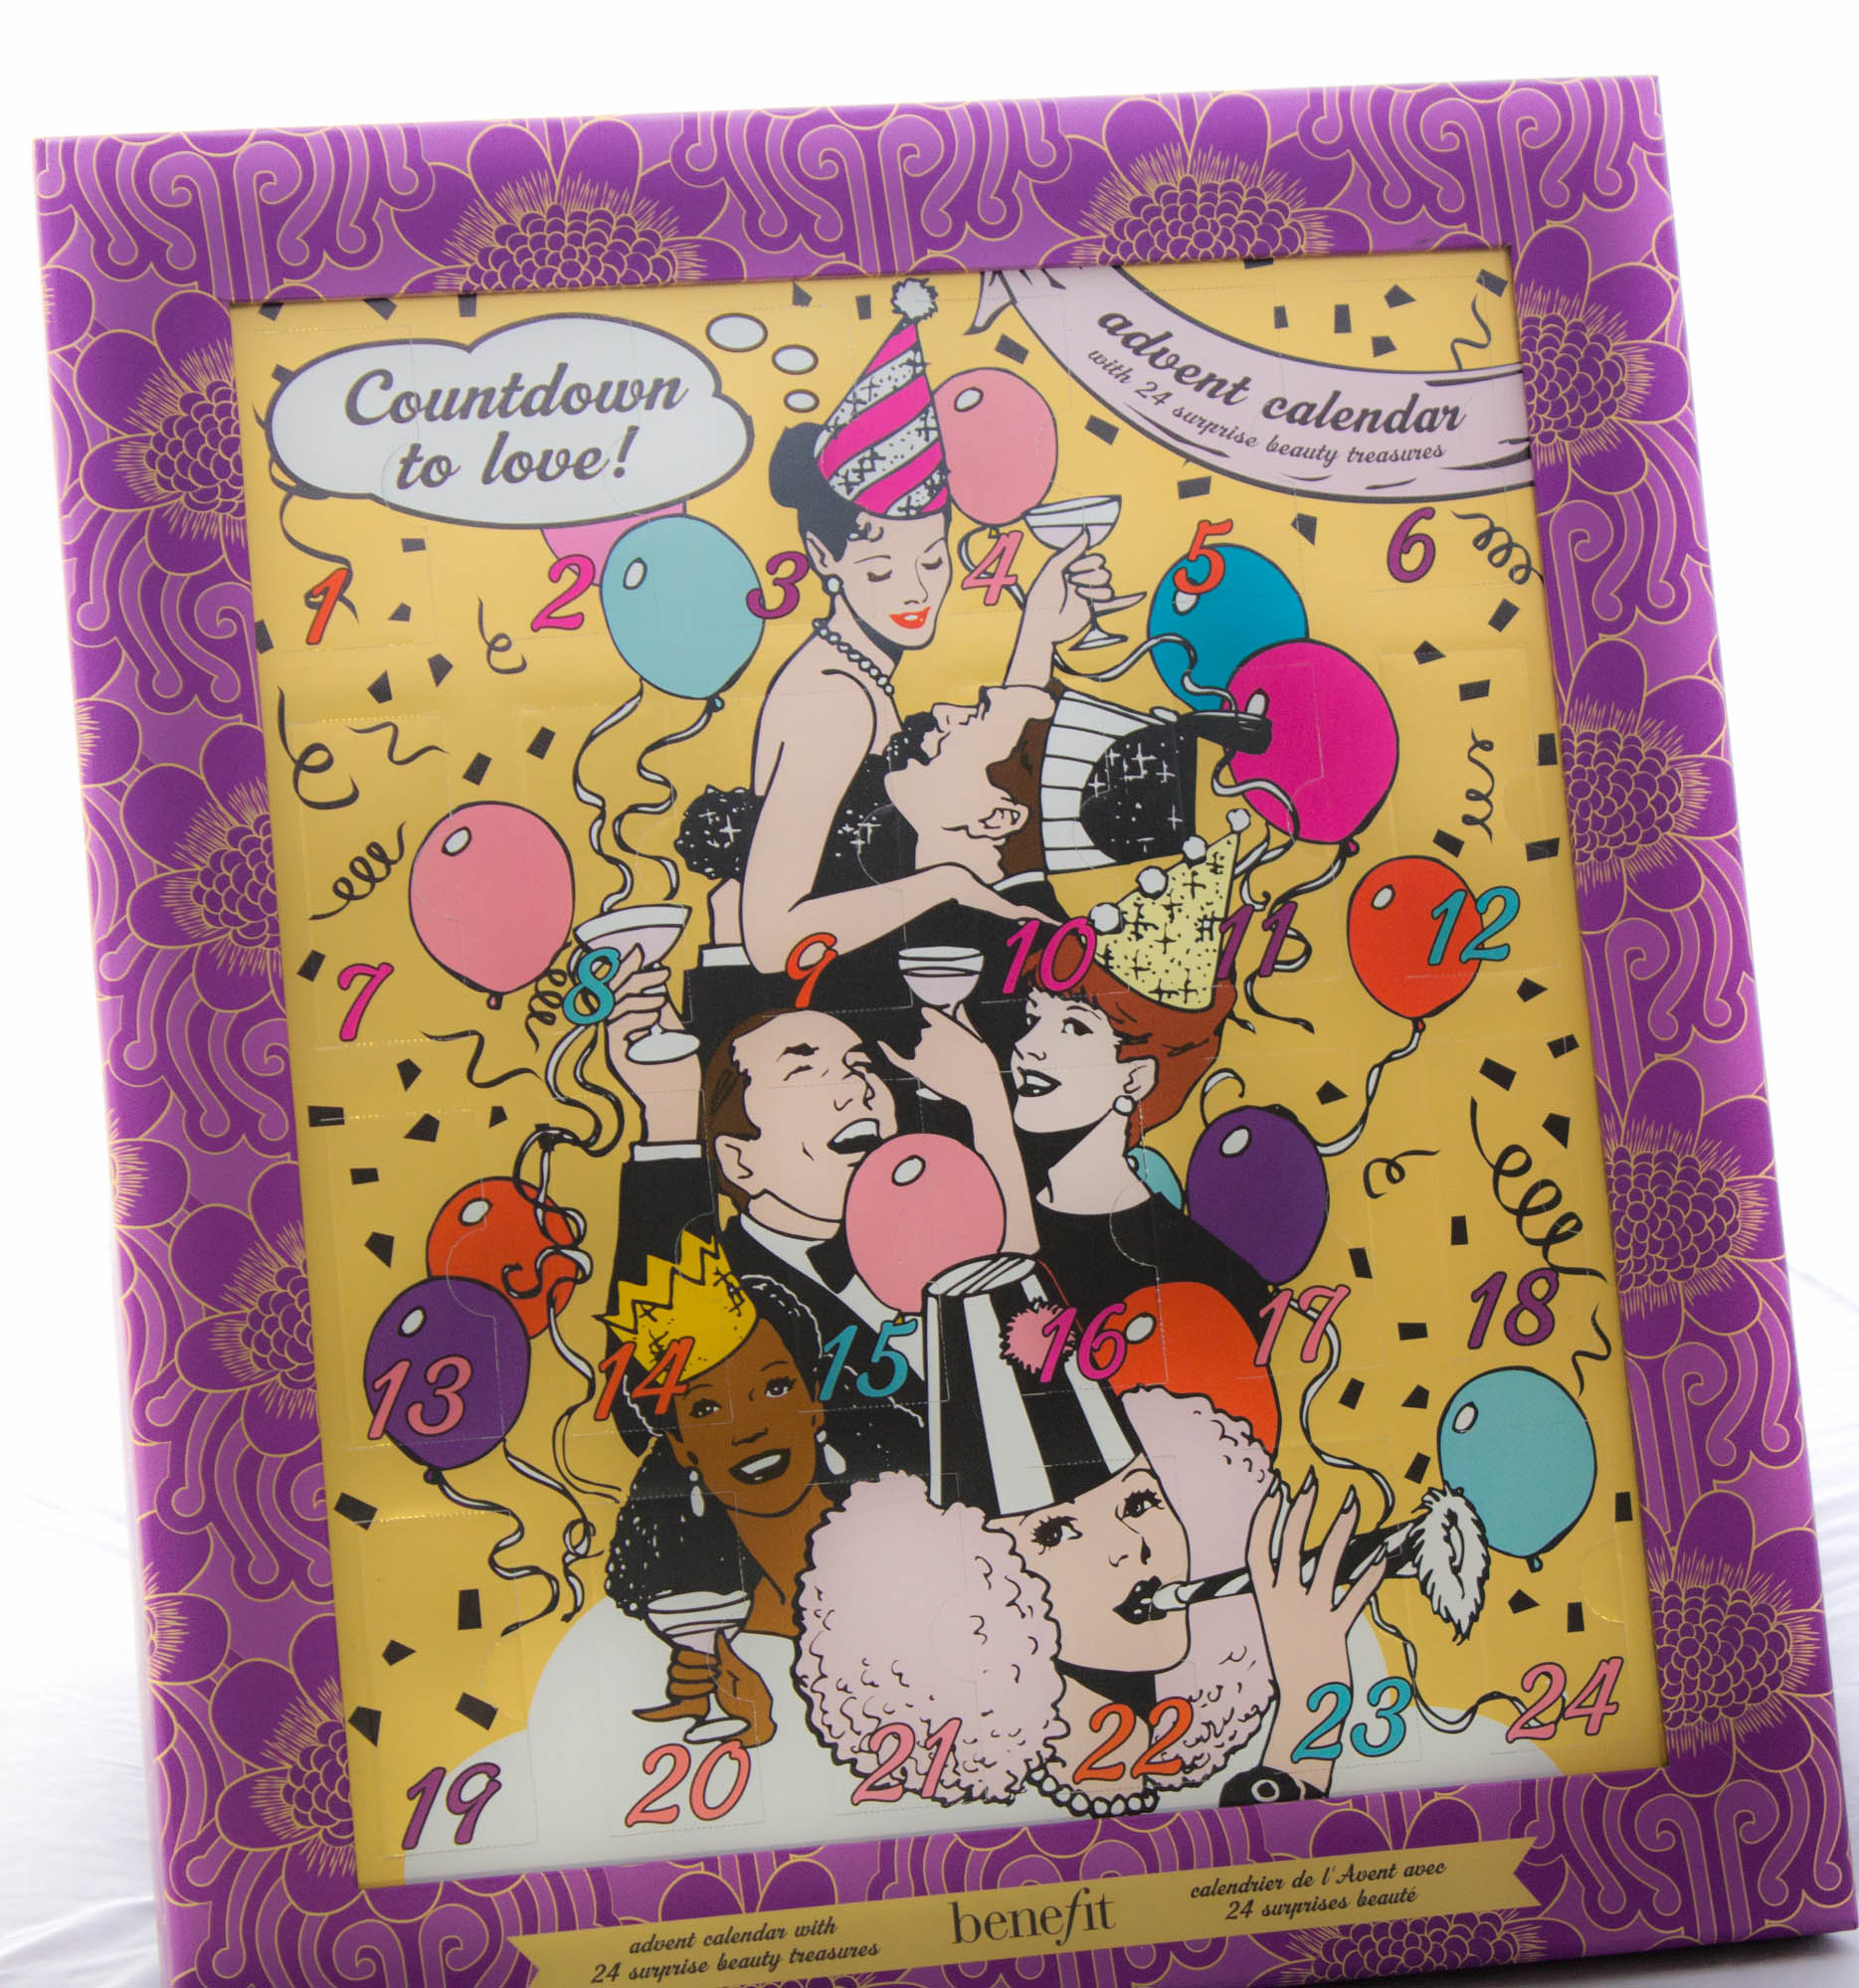 BENEFIT Countdown to Love Advent Calendar Days 1 to 6